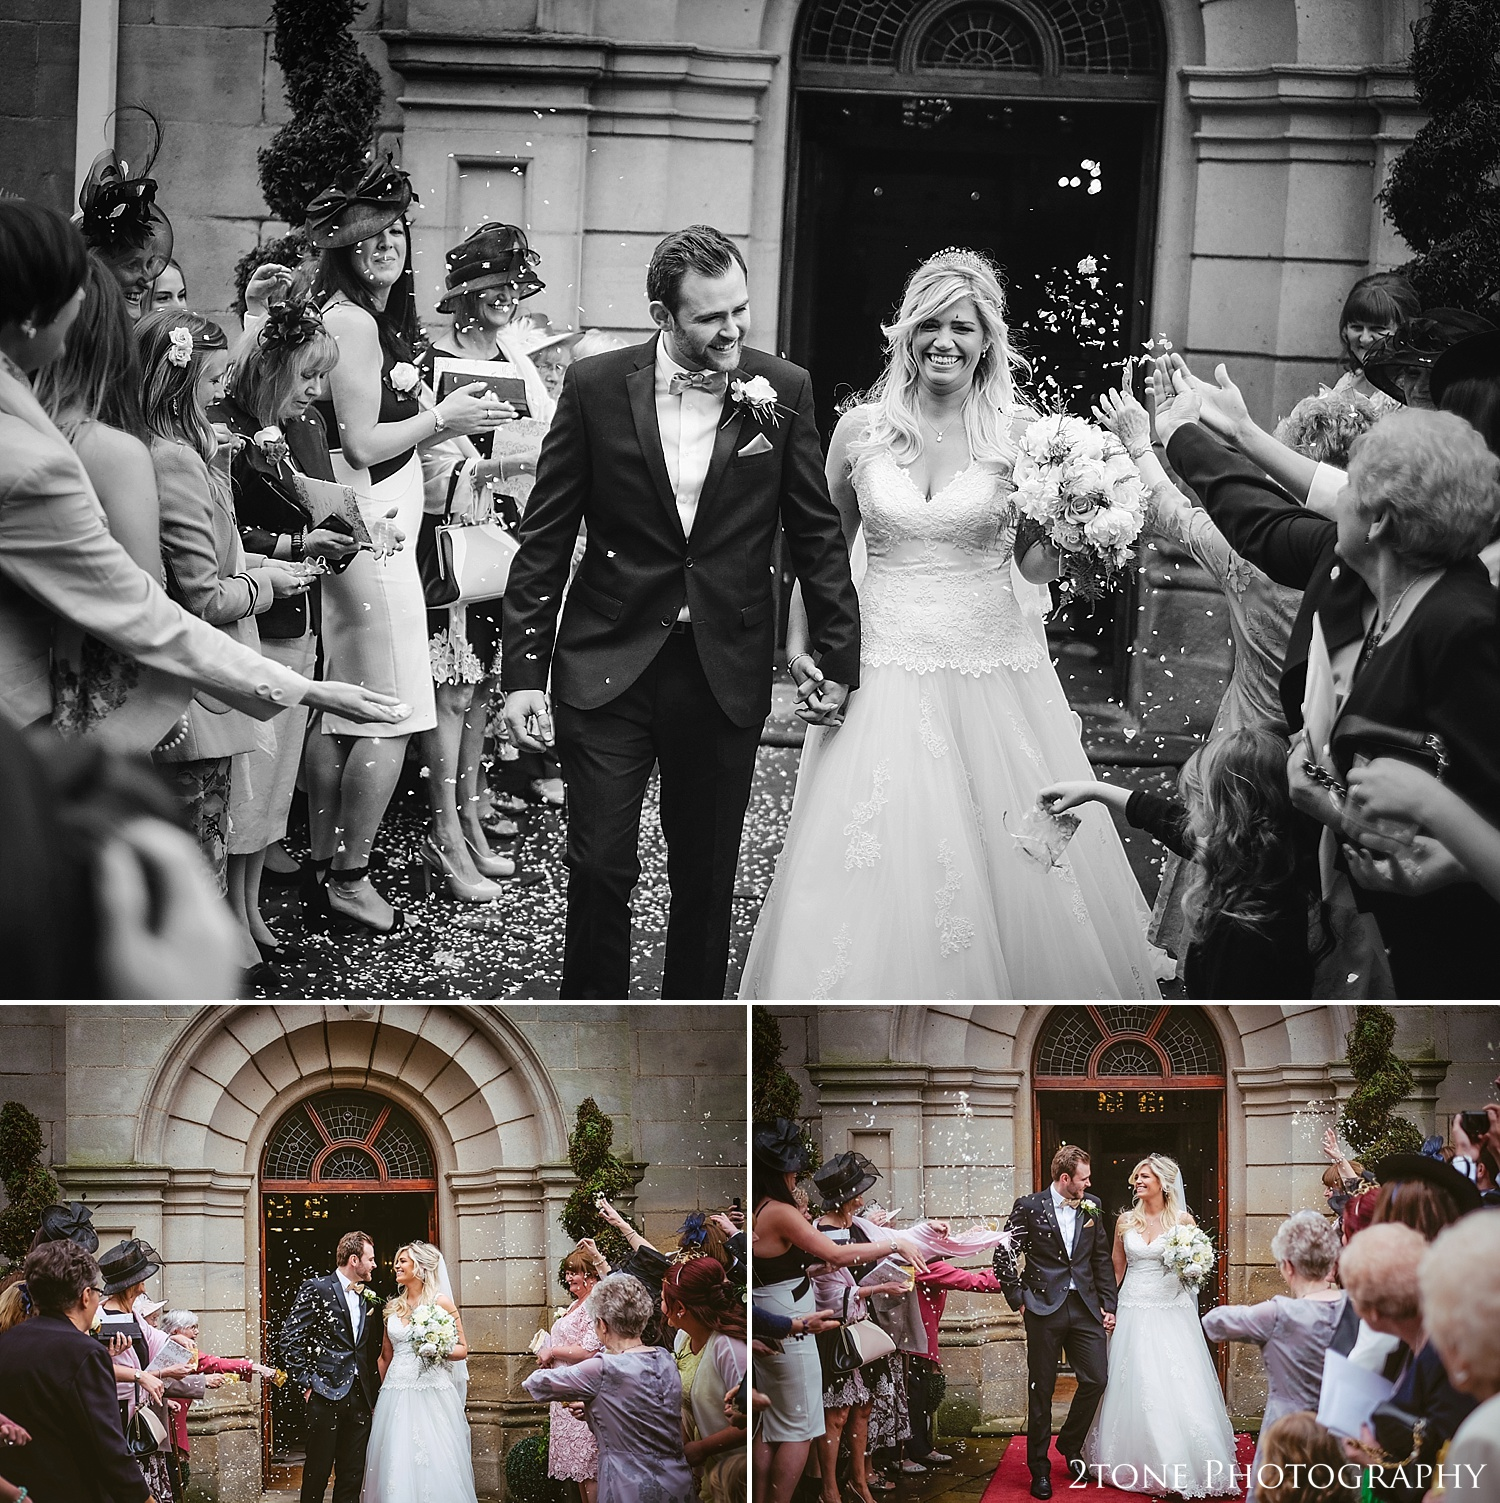 Wedding day confetti at Wynyard Hall.  Wynyard Hall wedding photography by www.2tonephotography.co.uk